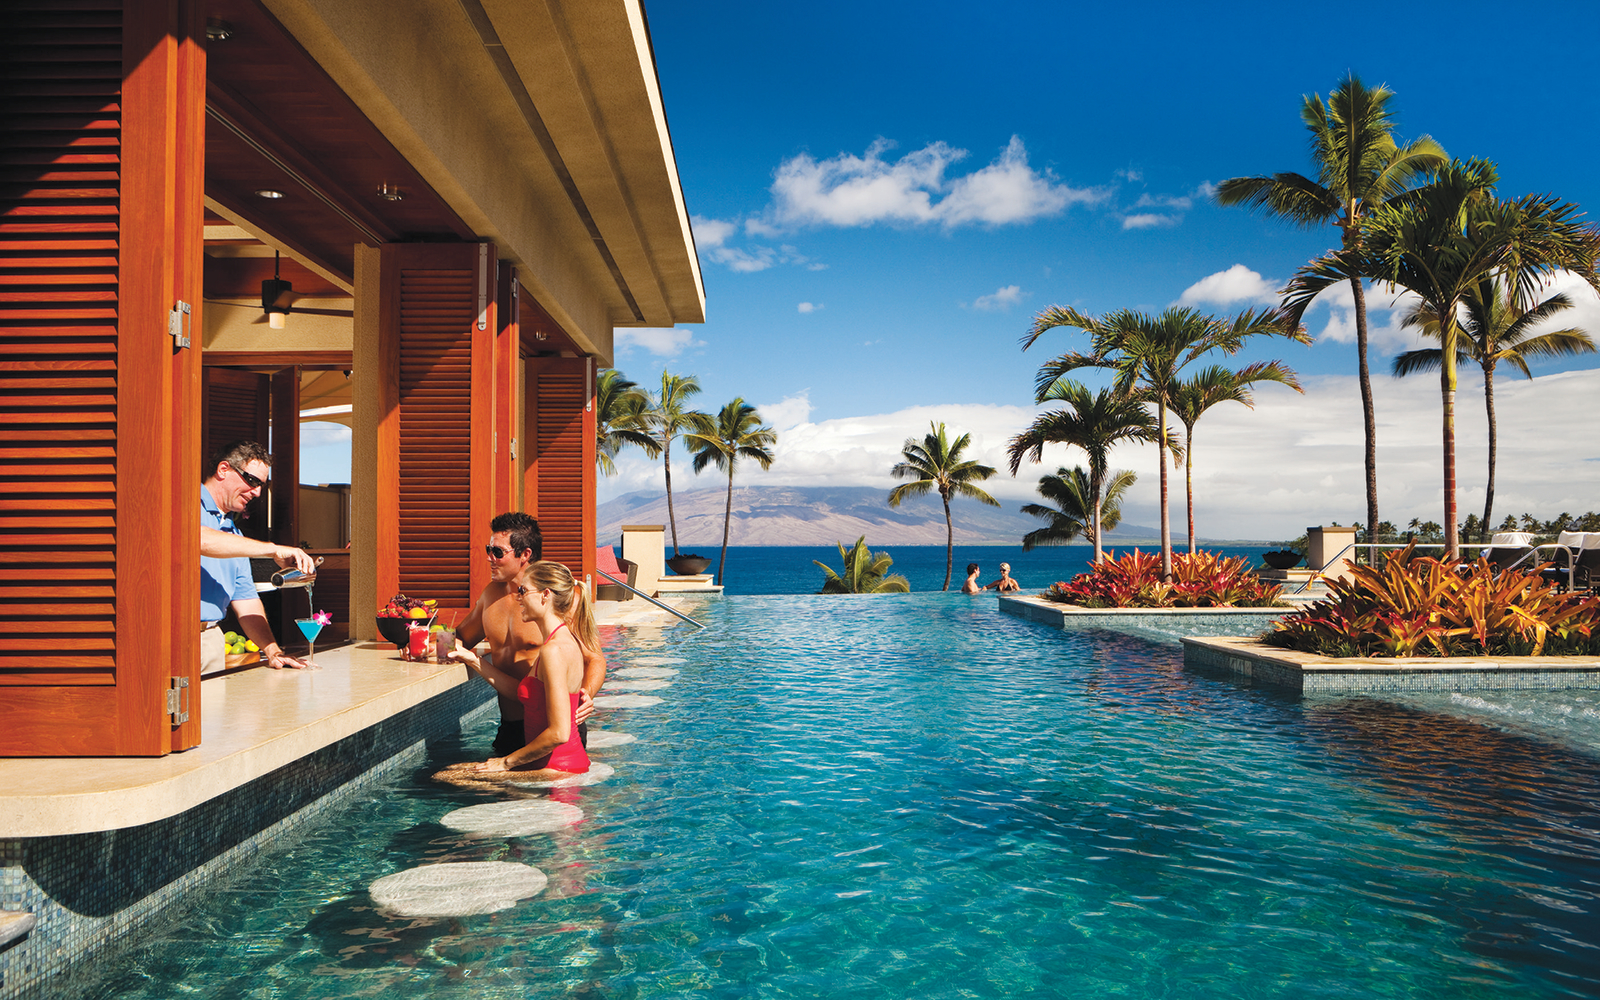 Best Kitchen Gallery: World's Best Family Beach Hotels 2015 Travel Leisure of Hawaii Resorts And Hotels  on rachelxblog.com